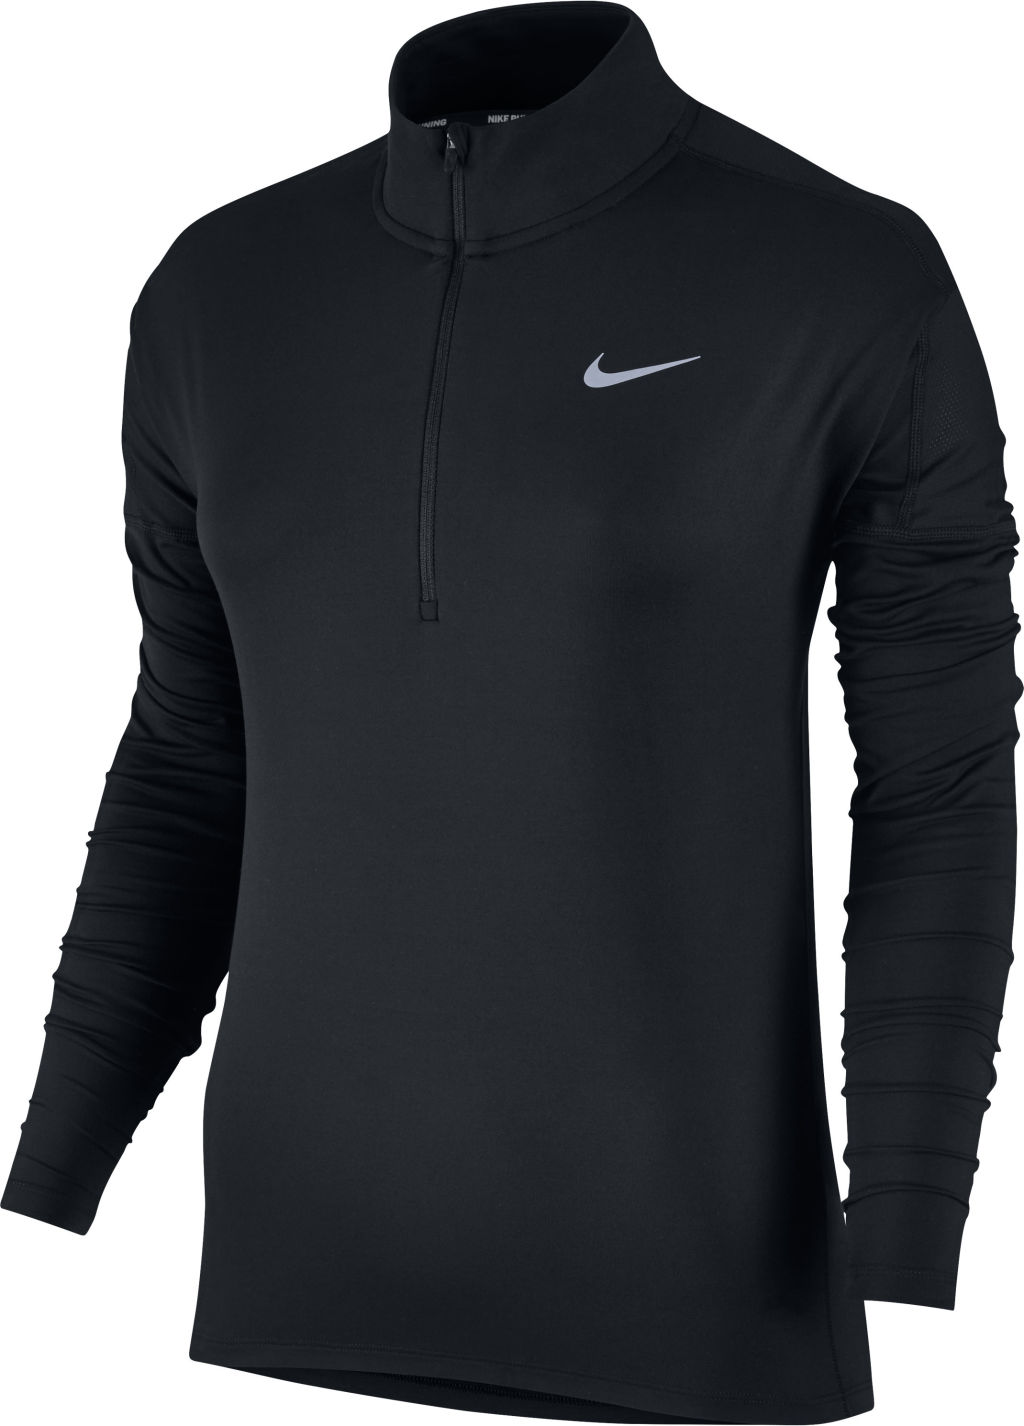 Nike Dry Element Running Top W